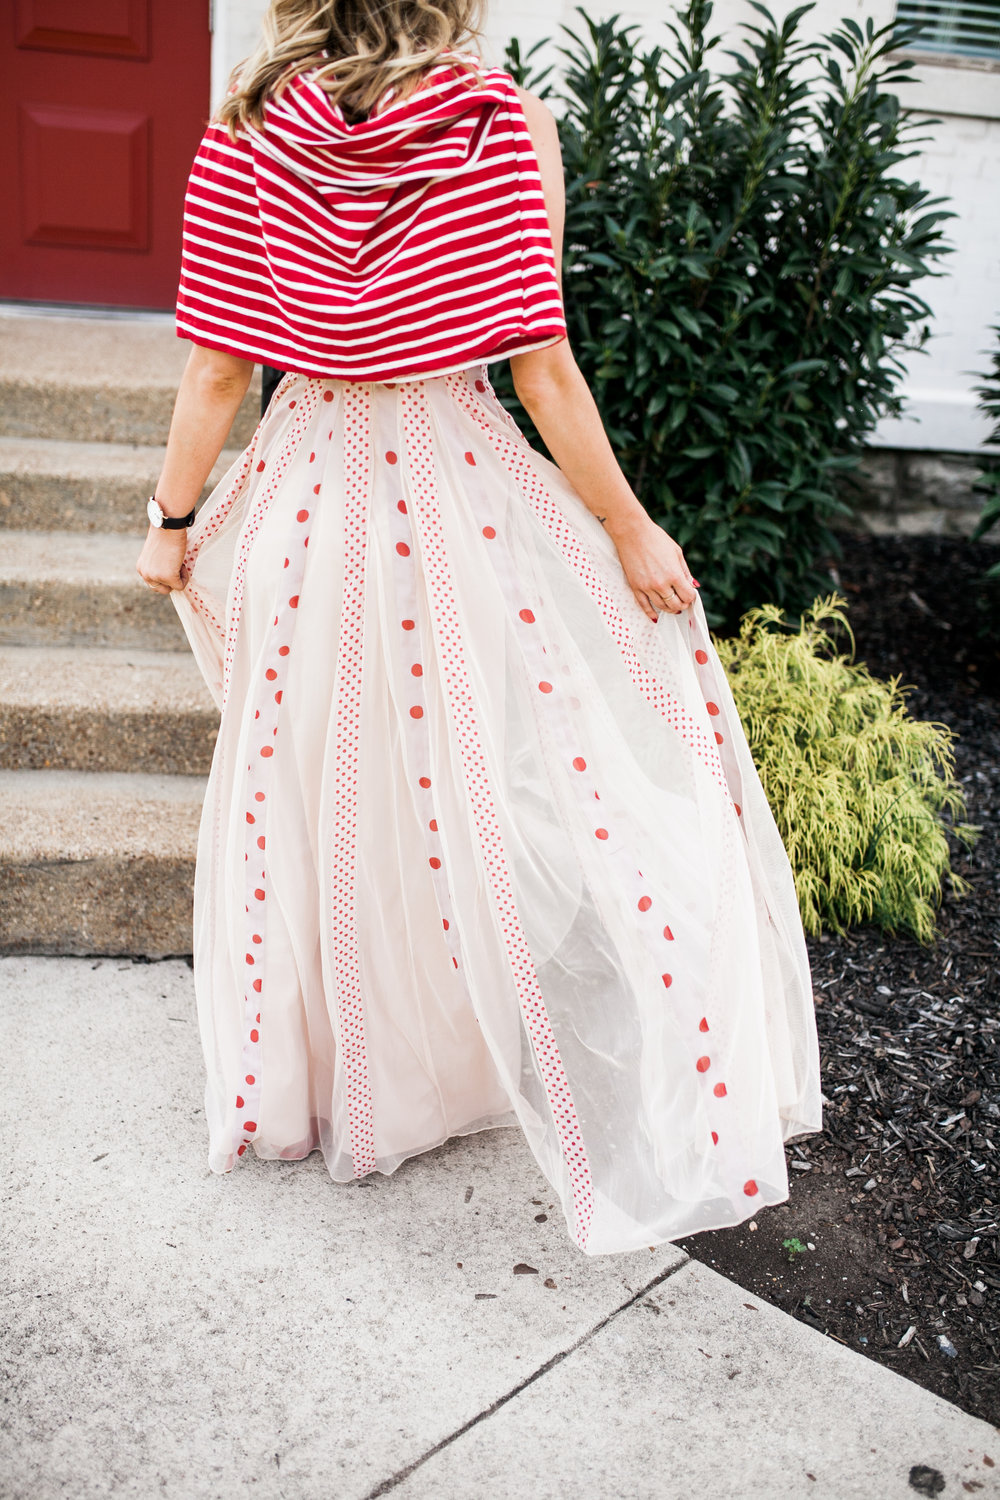 how-to-wear-the-polka-dot-trend-as-an-adult.jpg